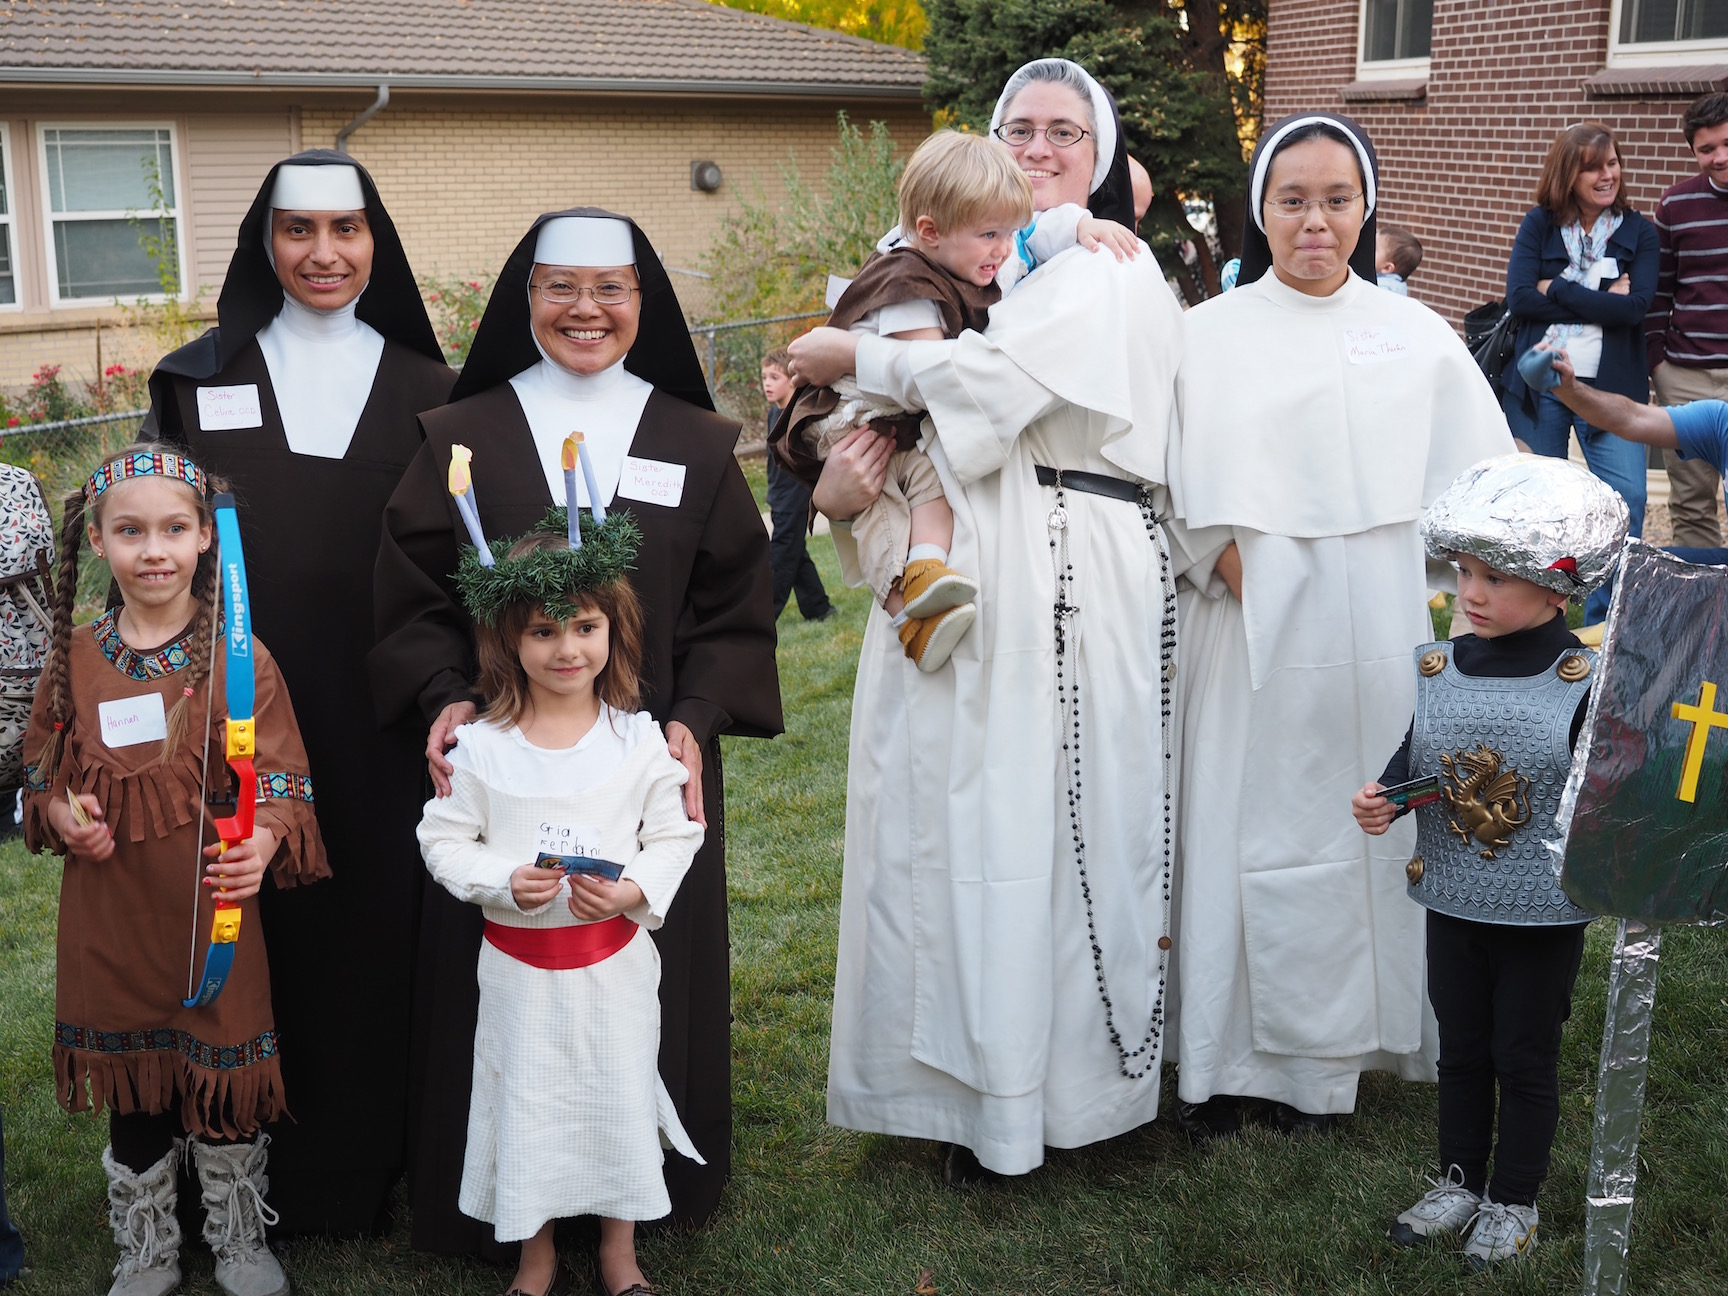 Costume contest winners at Feast of All-Saints